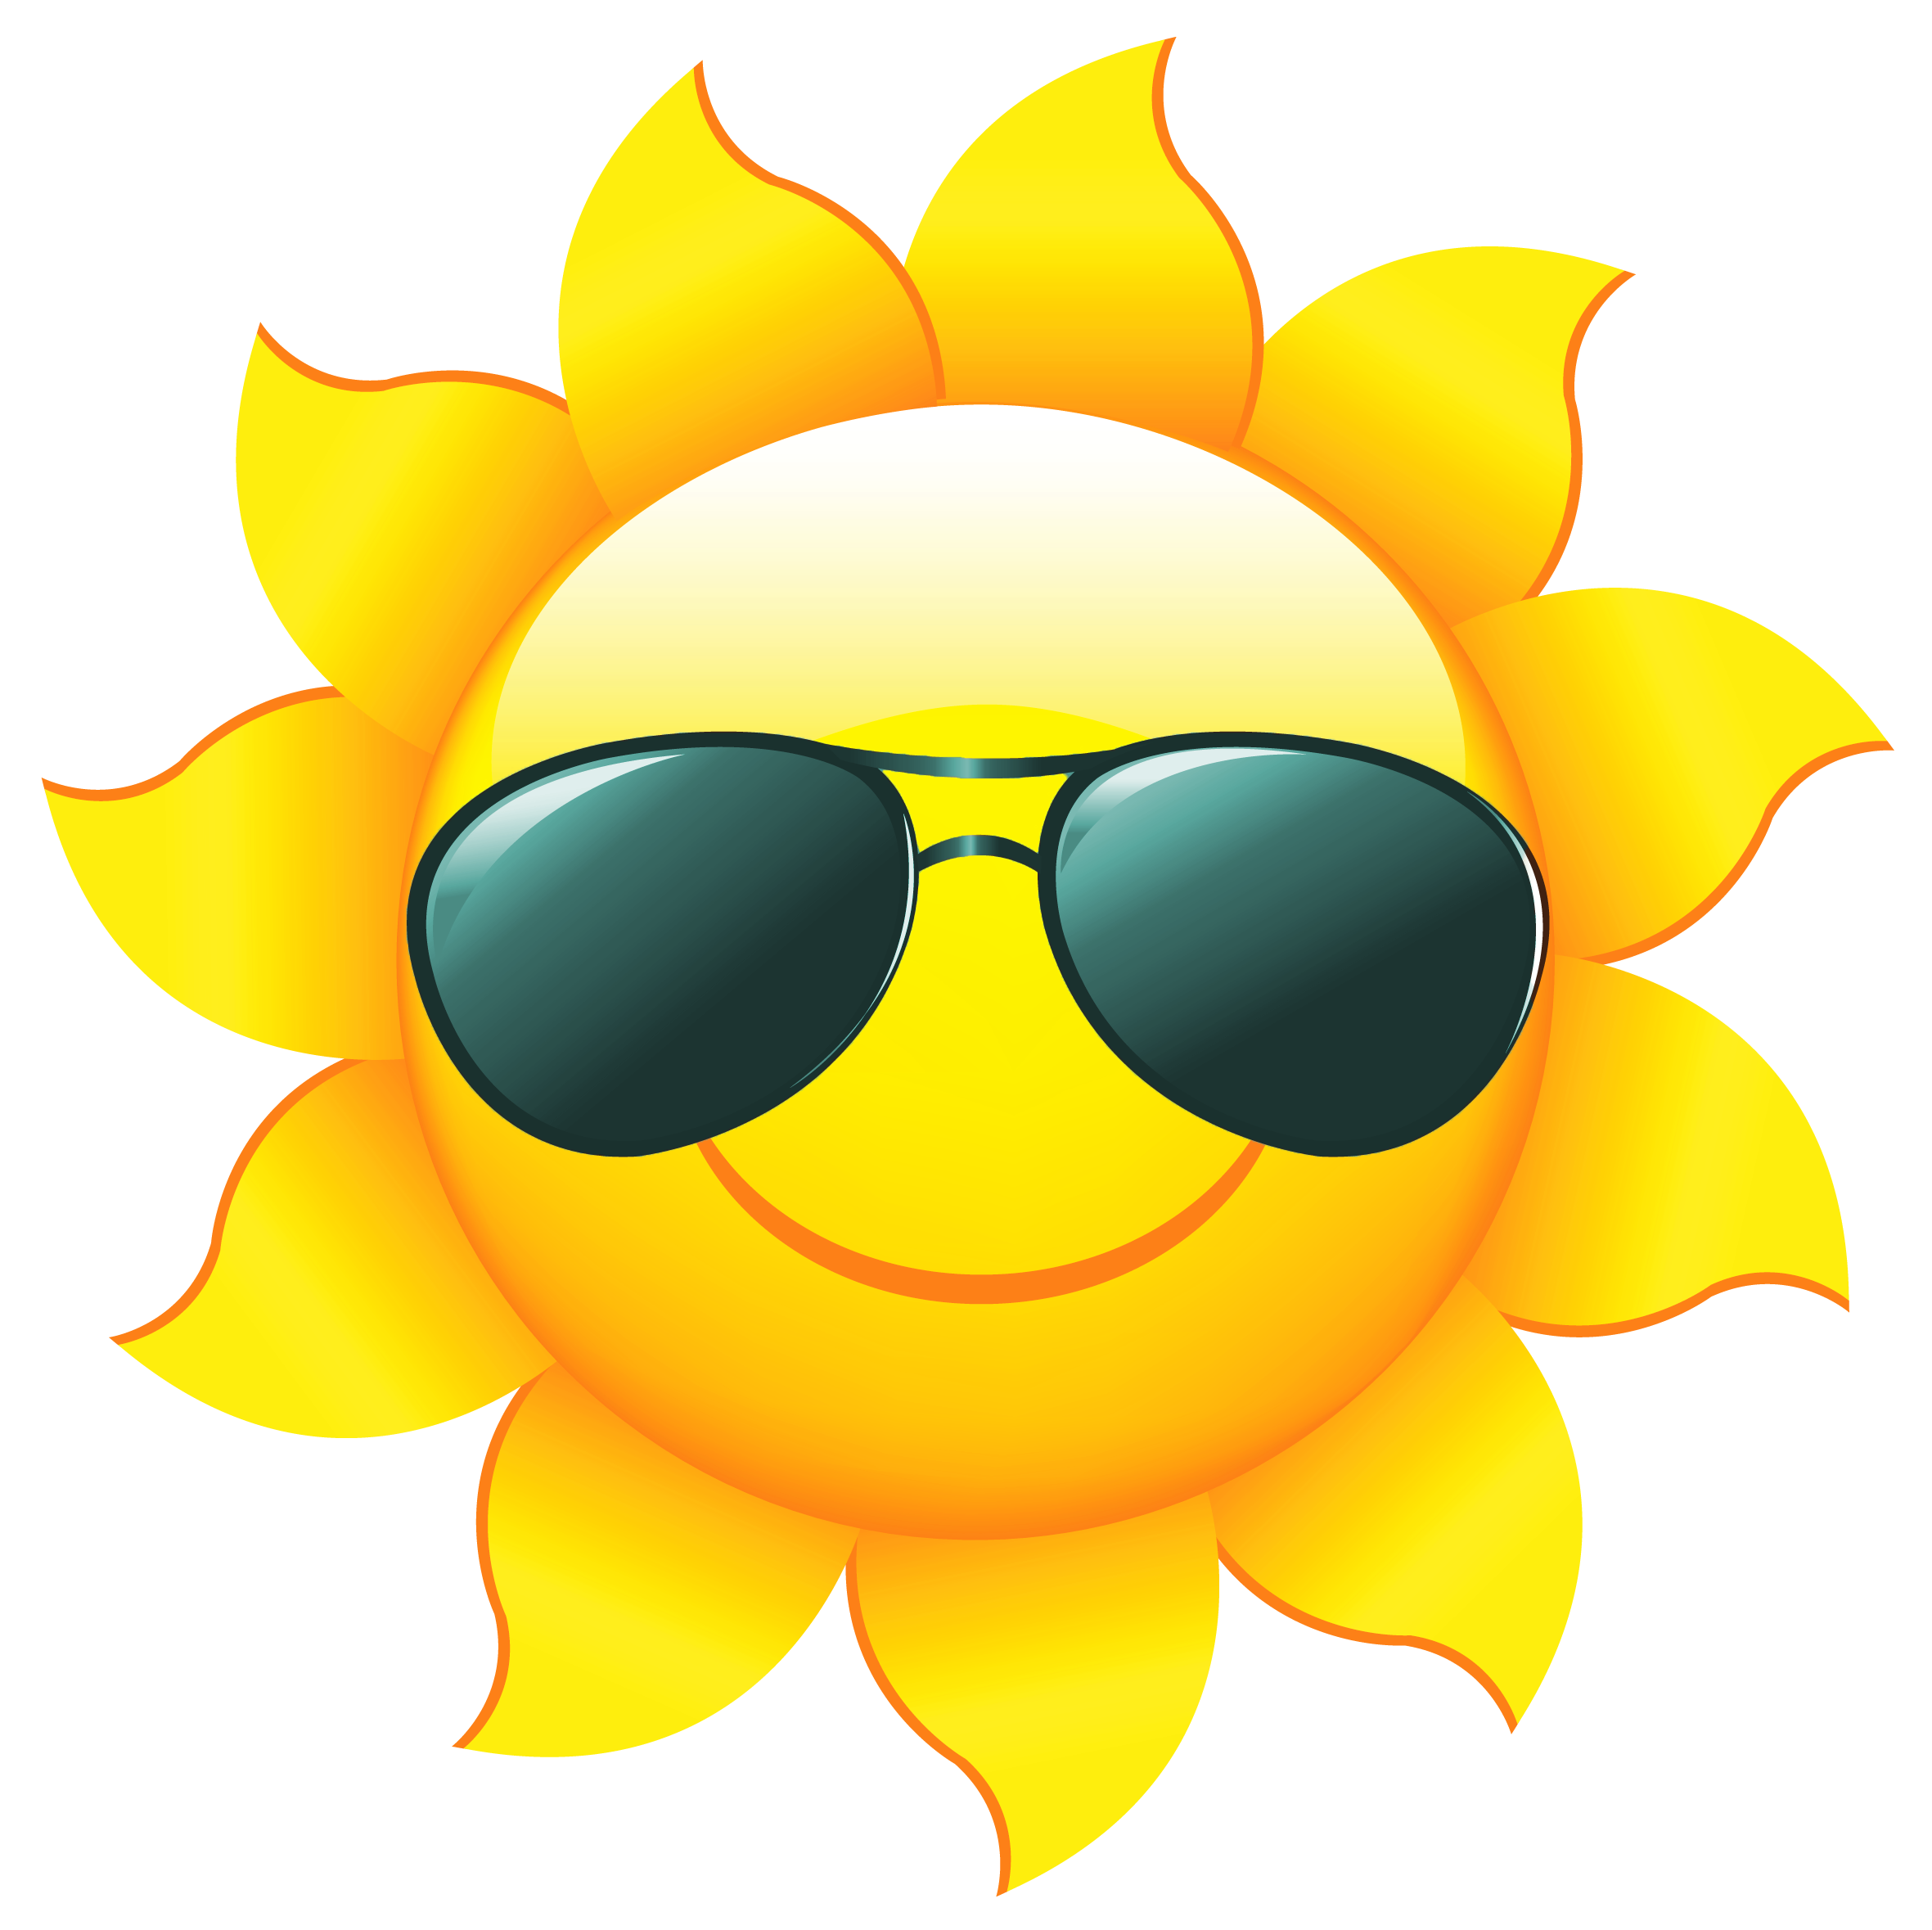 Sunshine sun clip art. Planning clipart planning meeting